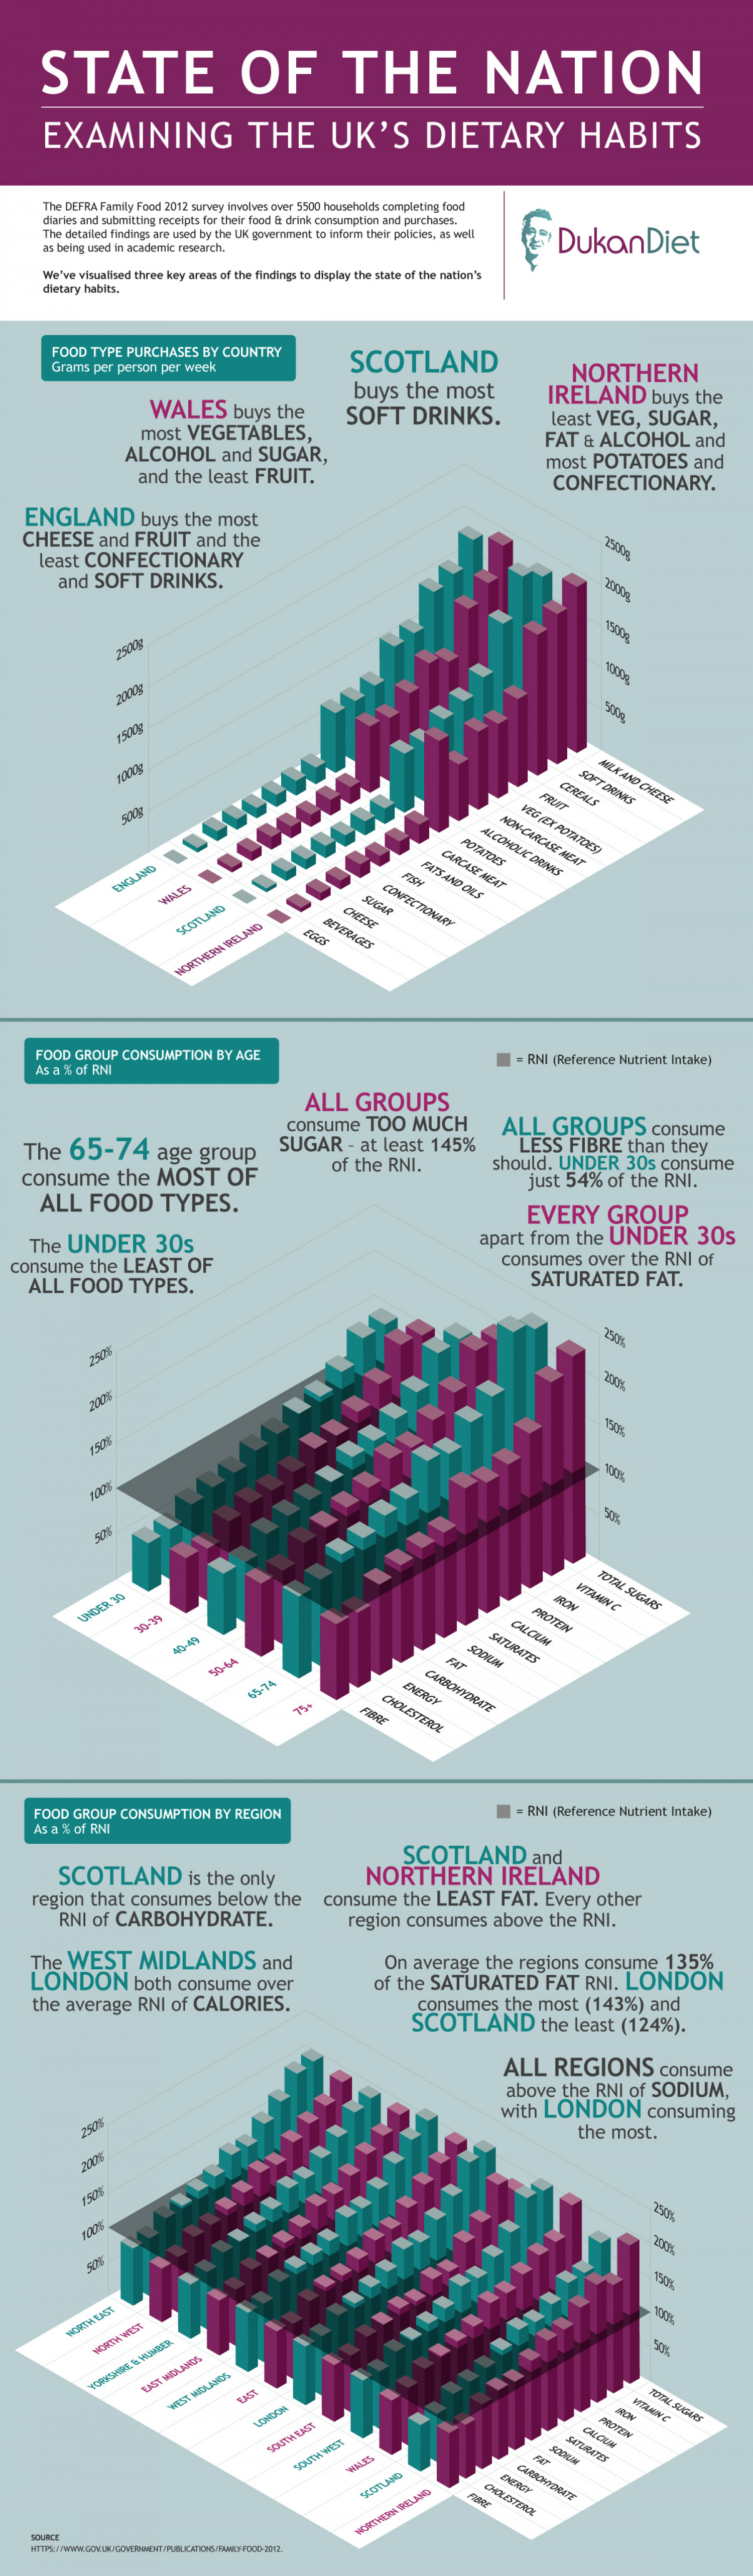 State of the Nation: Examining the UK's Dietary Habits Infographic